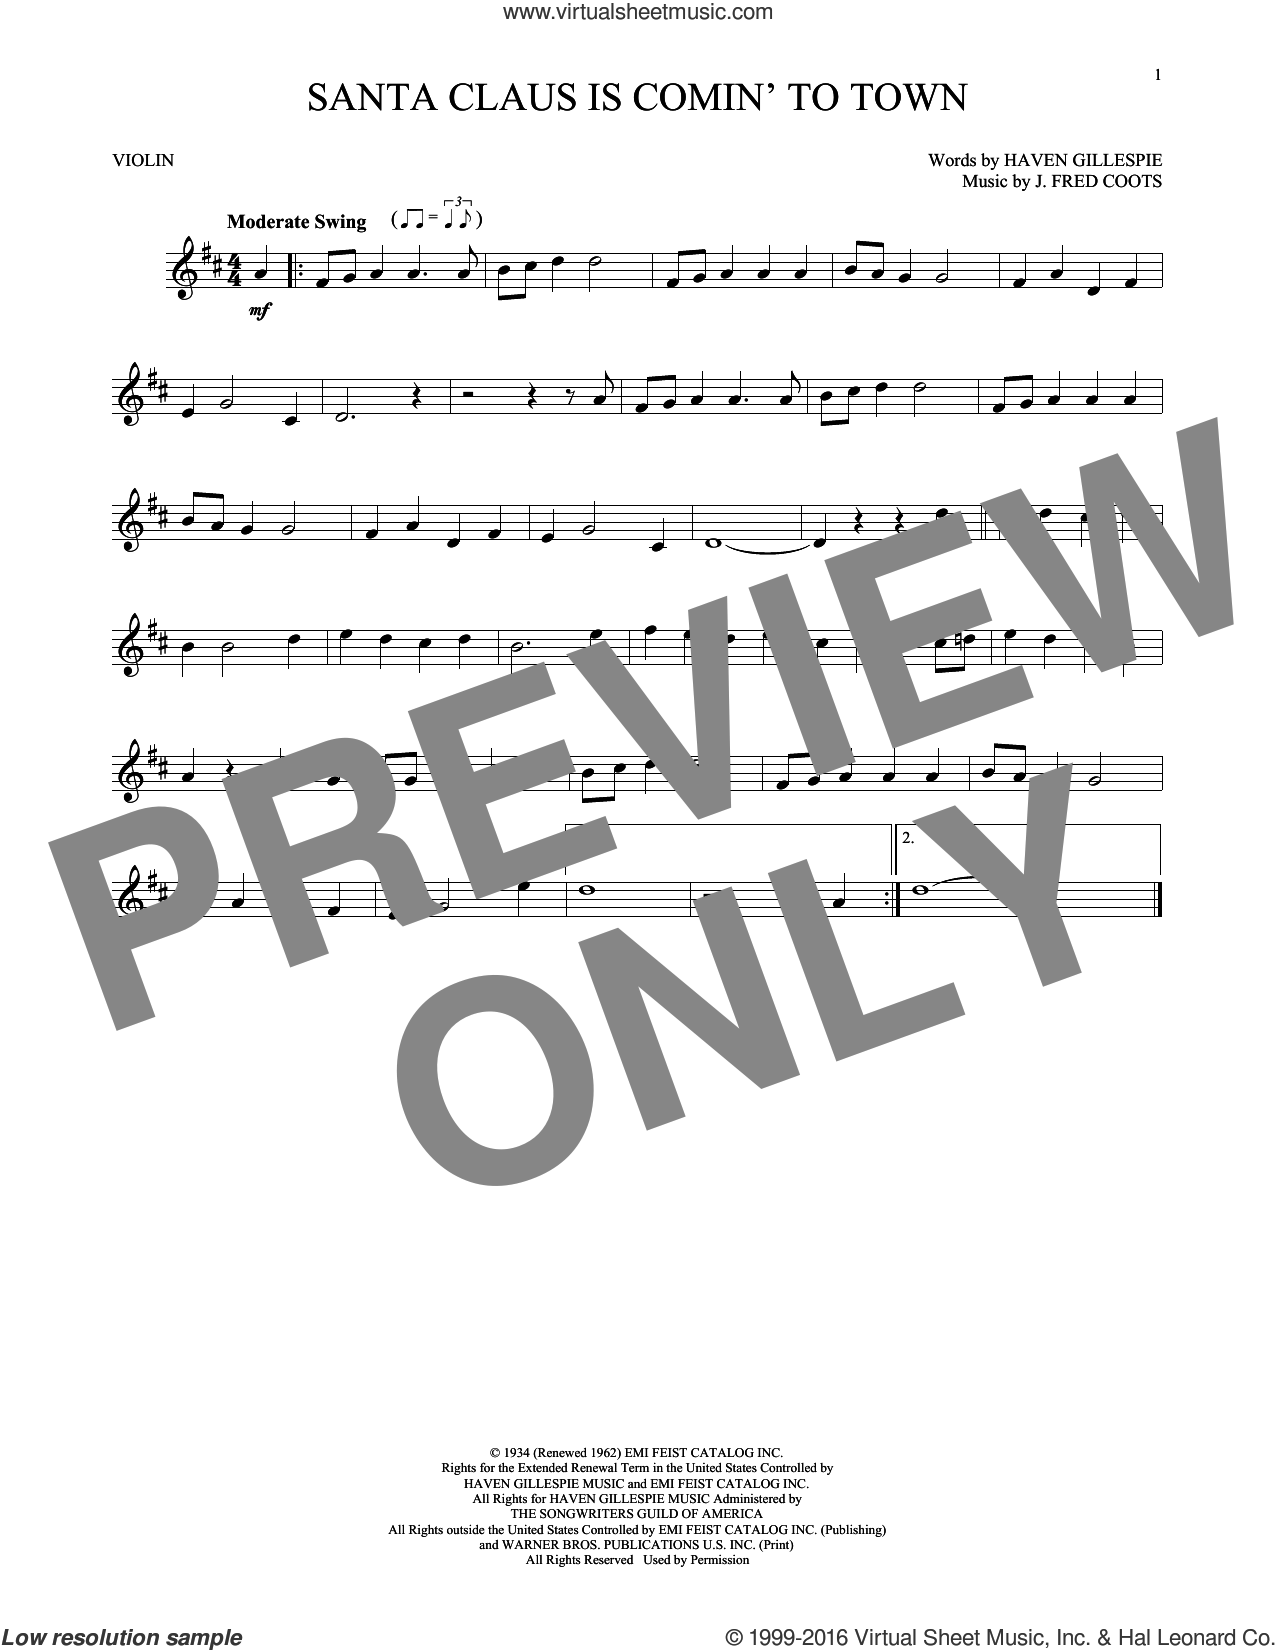 Santa Claus Is Comin' To Town sheet music for violin solo by J. Fred Coots and Haven Gillespie, intermediate